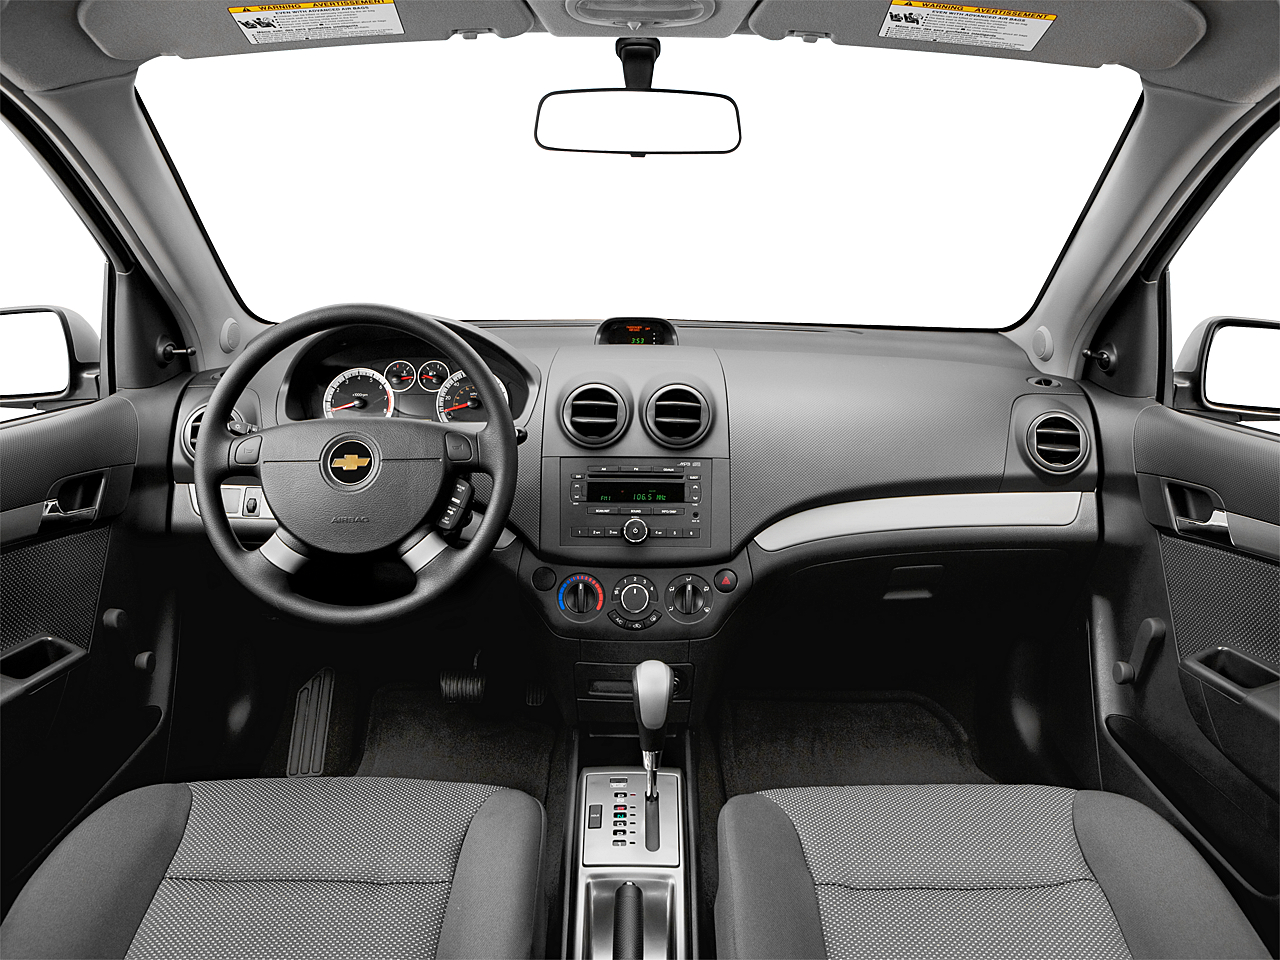 2008 Chevrolet Aveo LS, Centered Wide Dash Shot